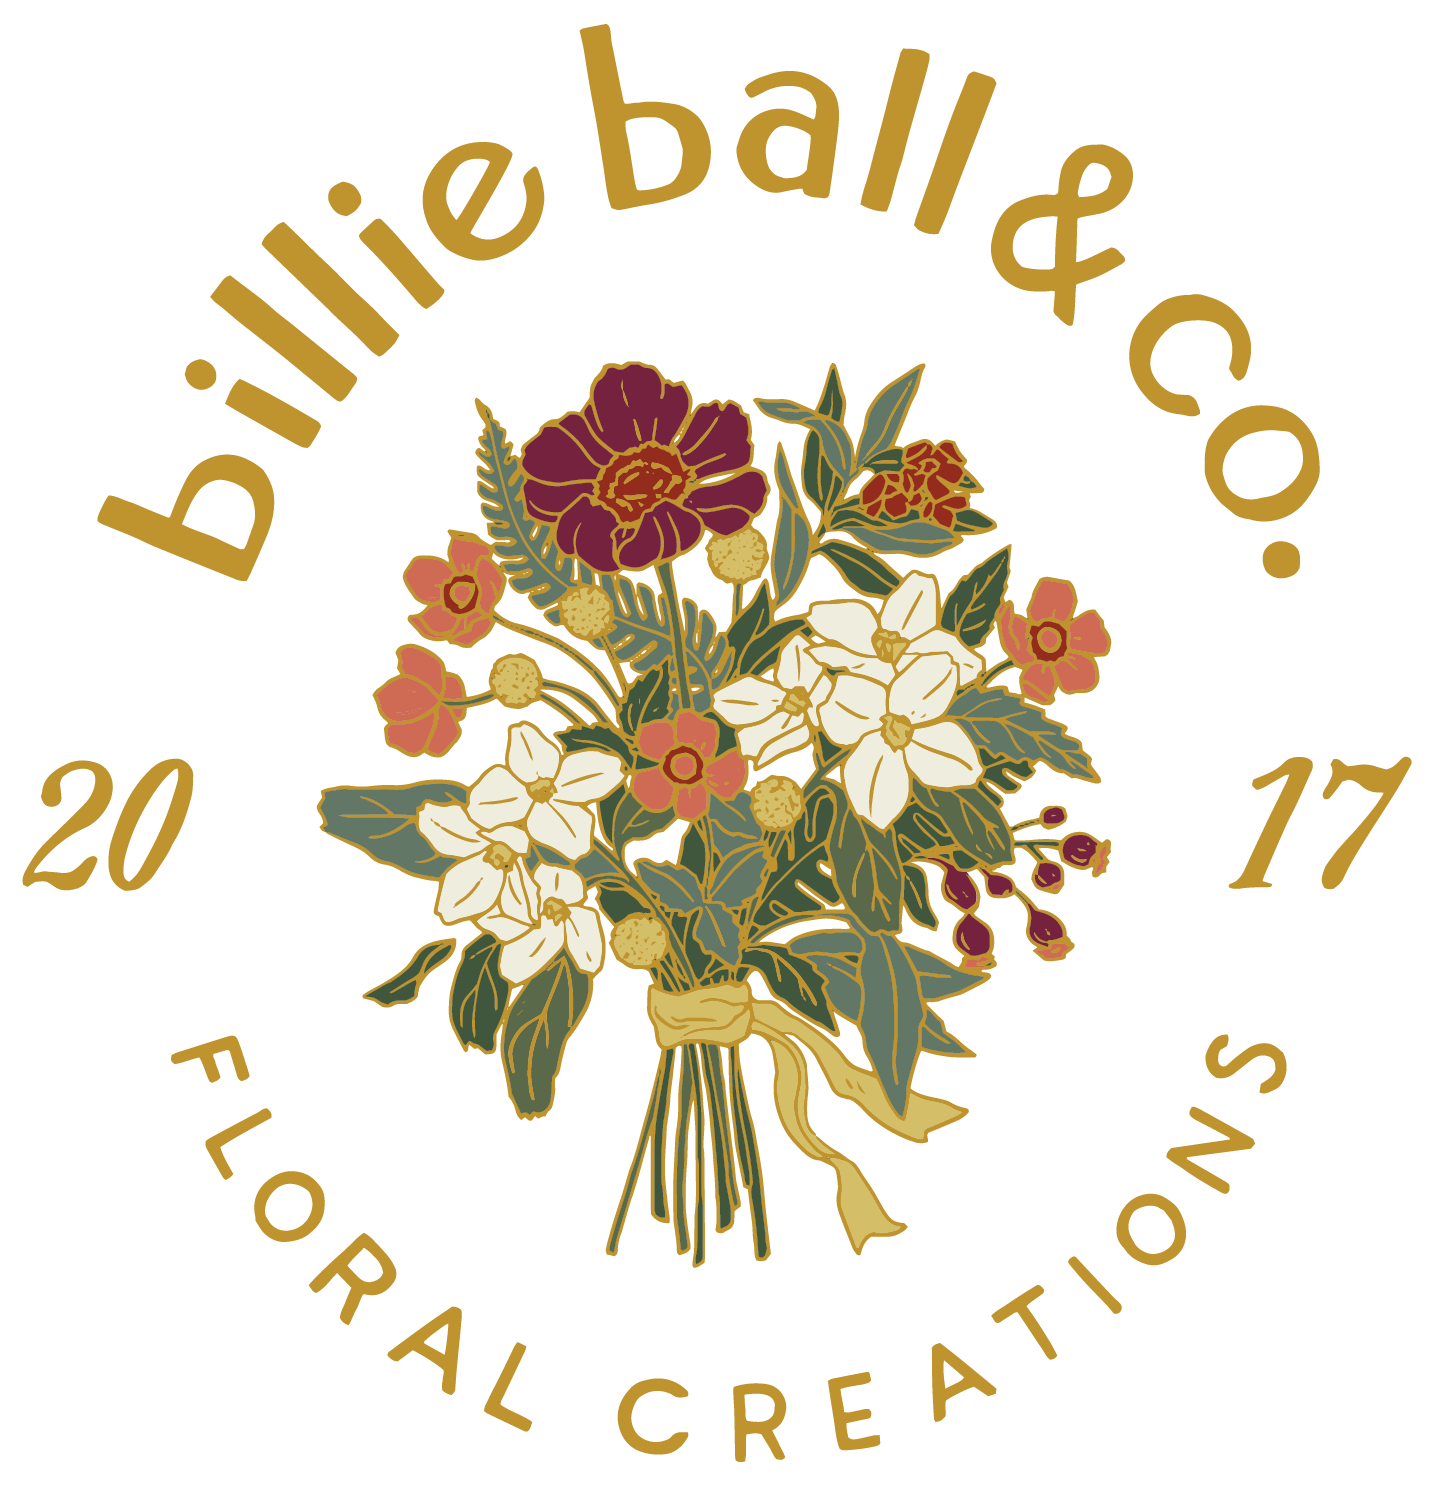 billie ball & co. Floral